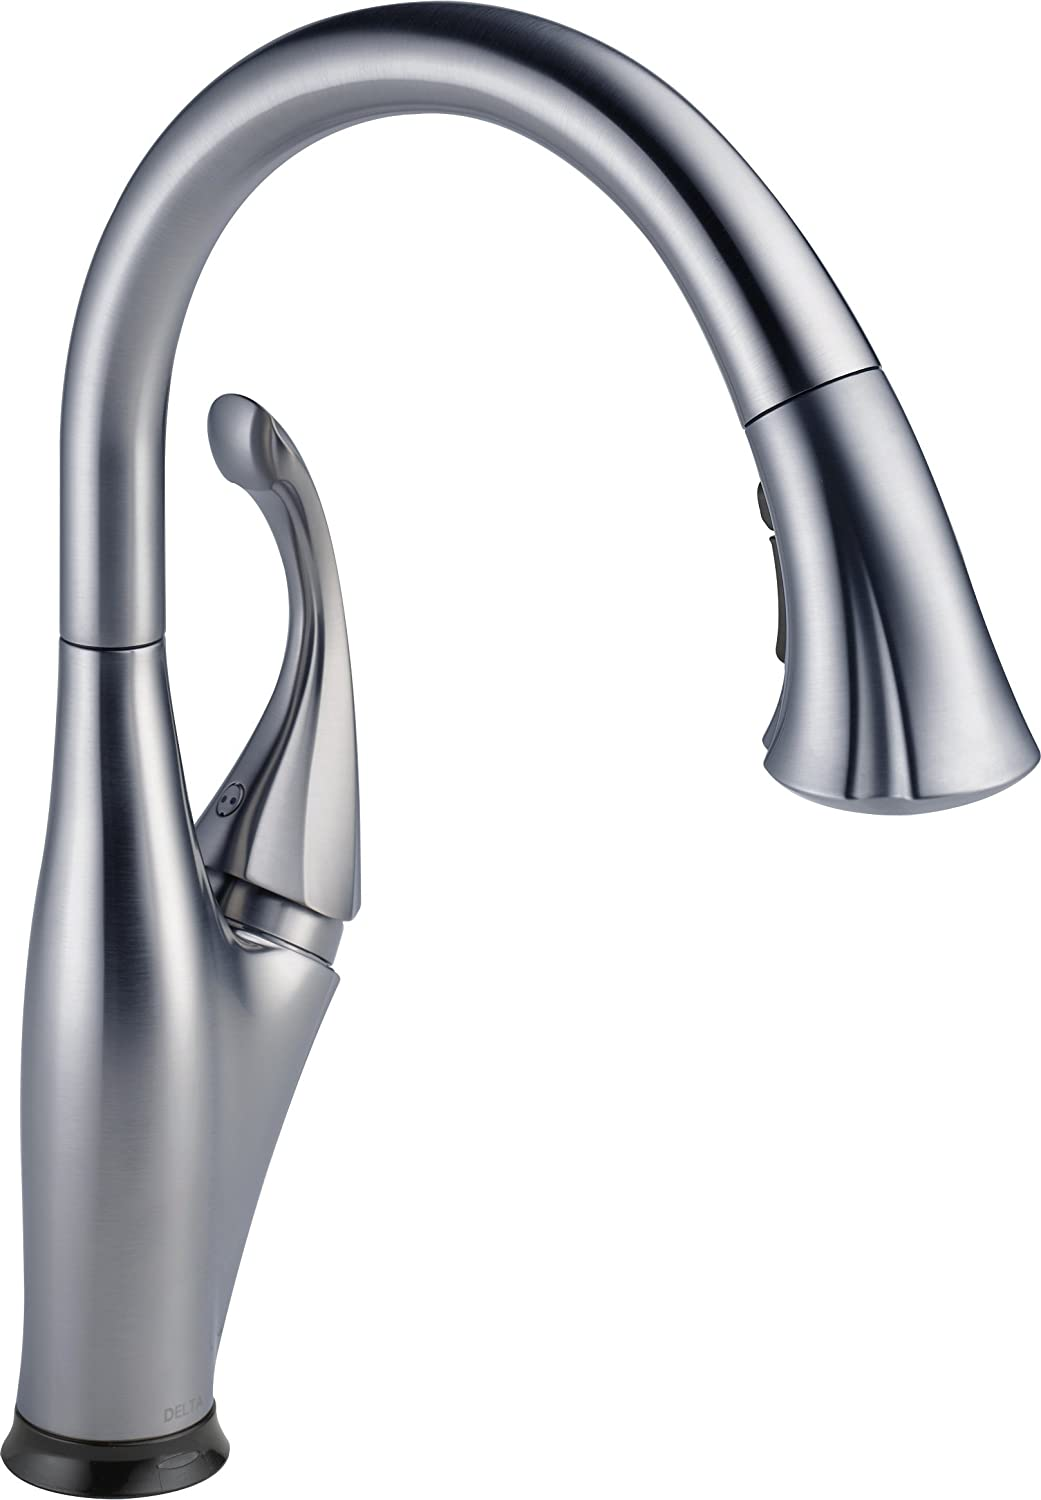 handle magnetic budget remodeling best imagineer kitchen single for with faucets faucet delta leland any docking